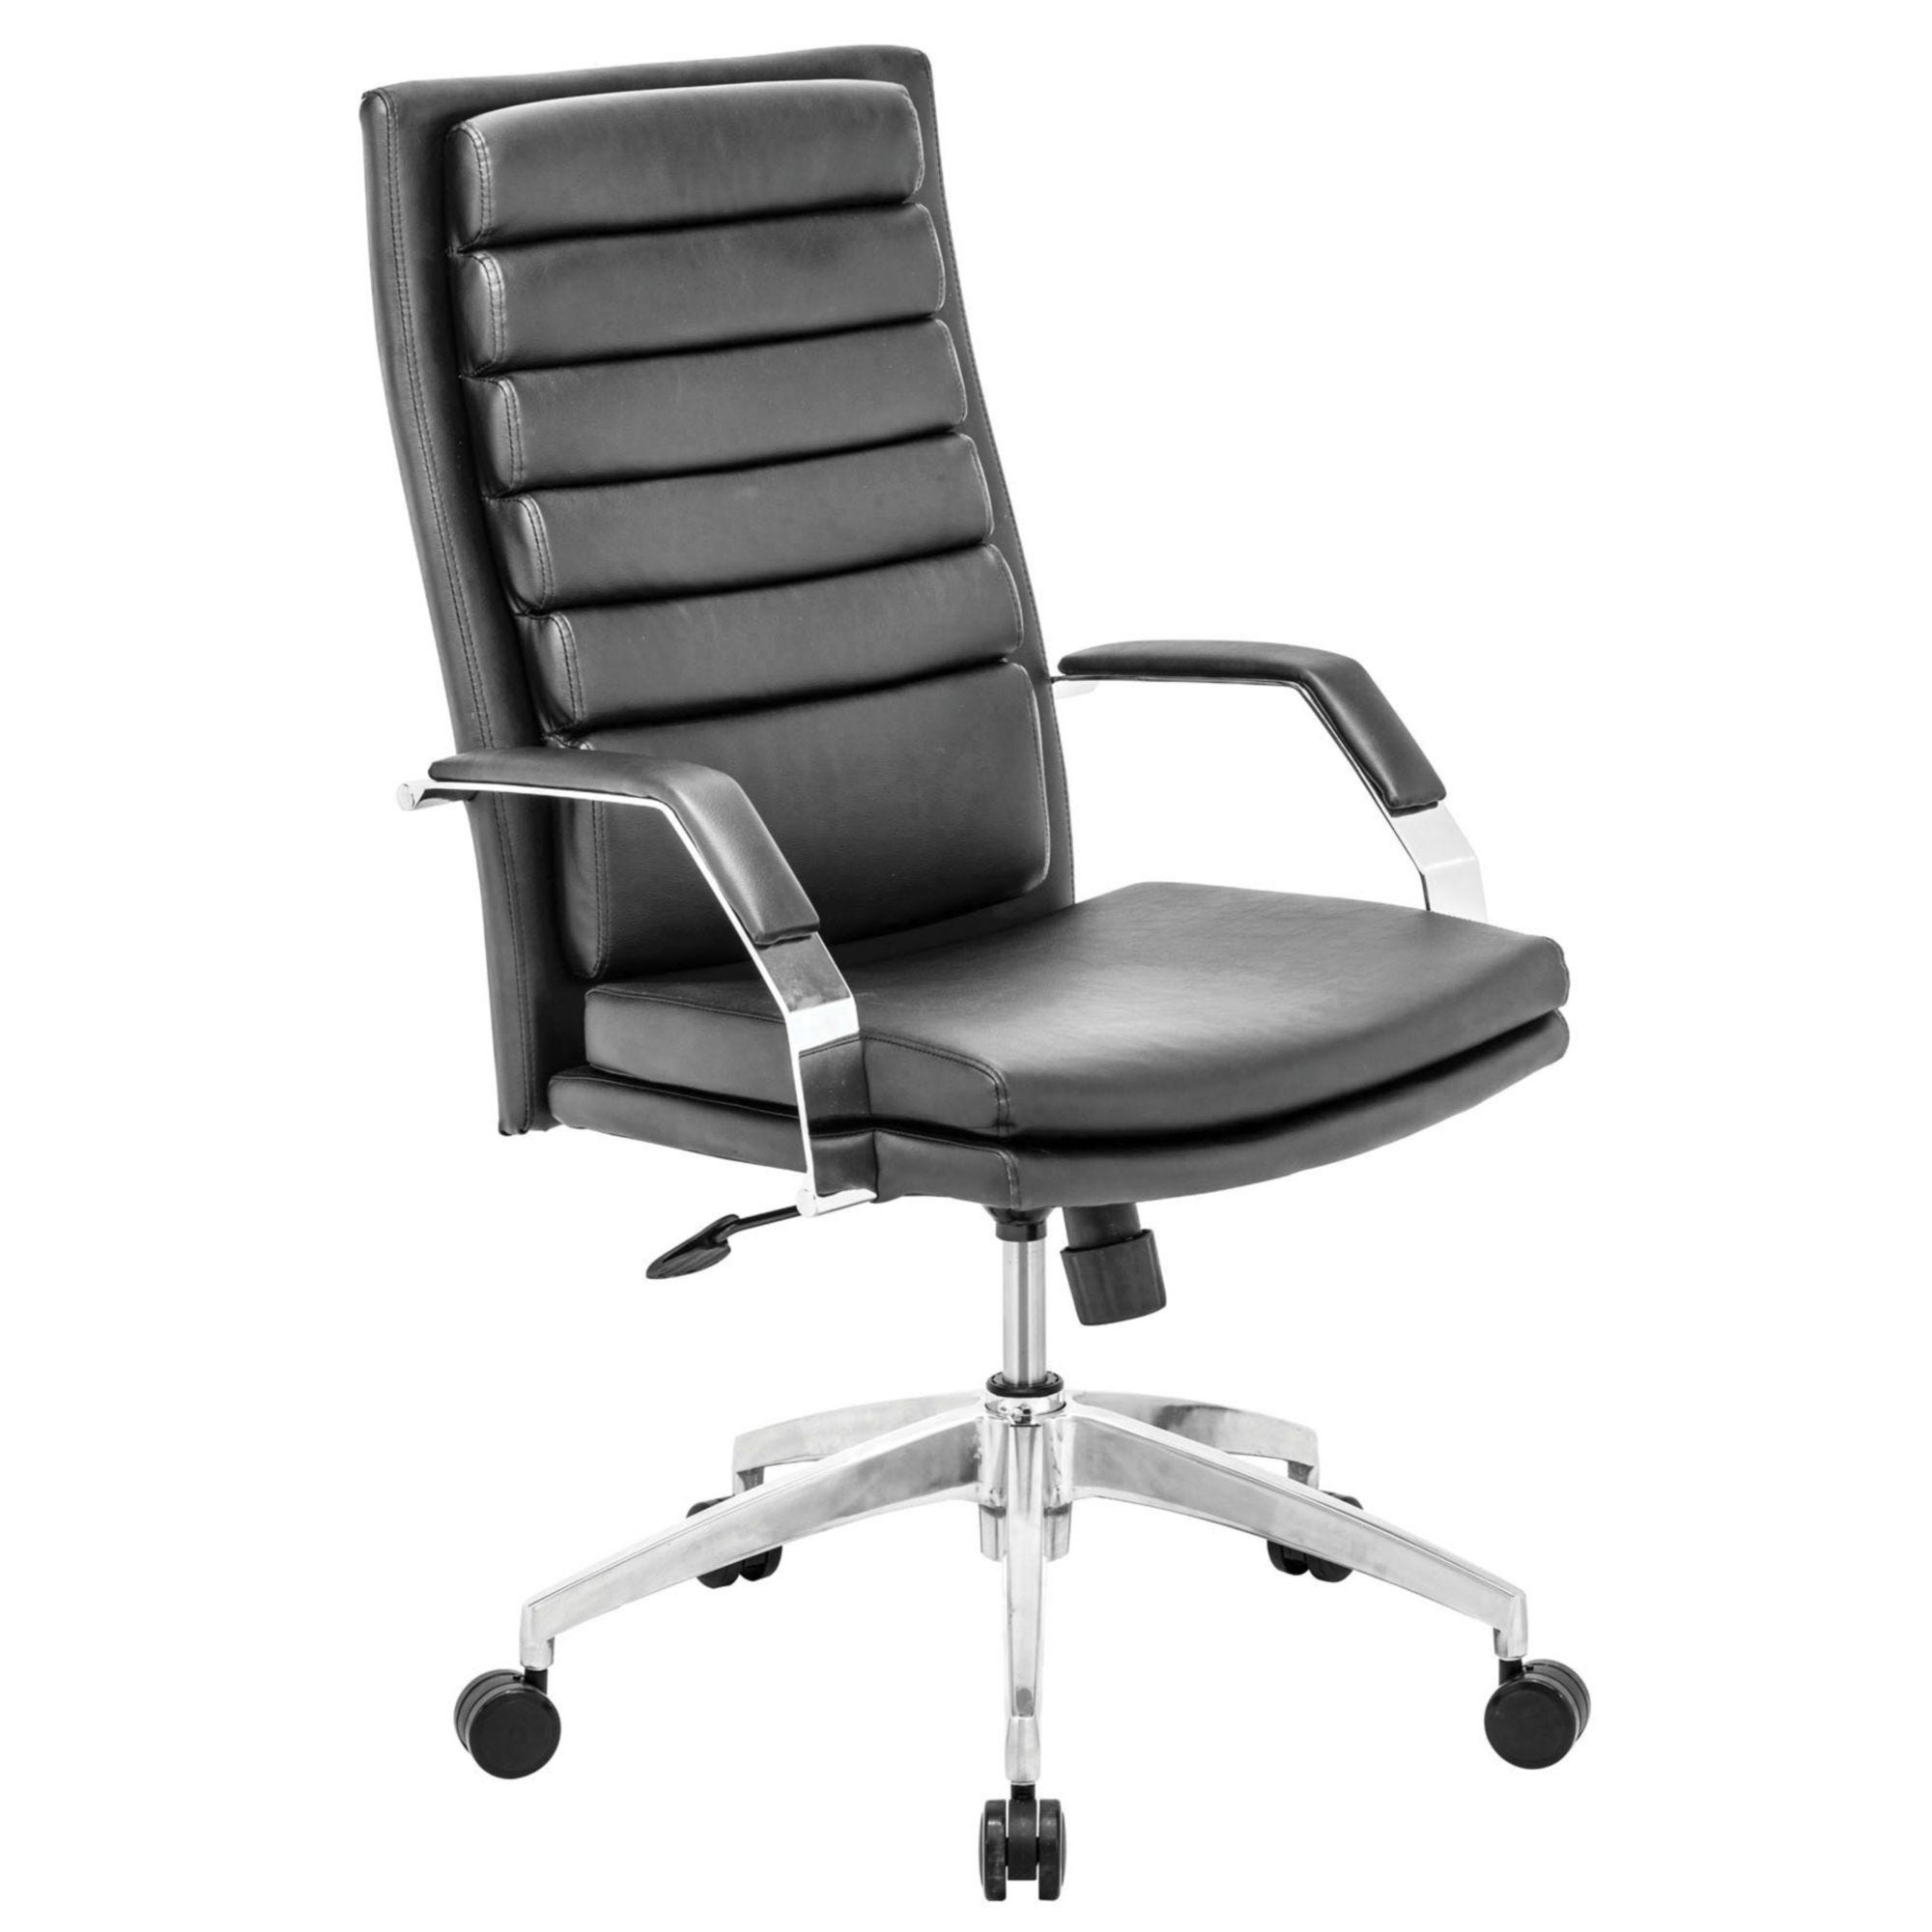 comfort office chair. Comfort Office Chair M